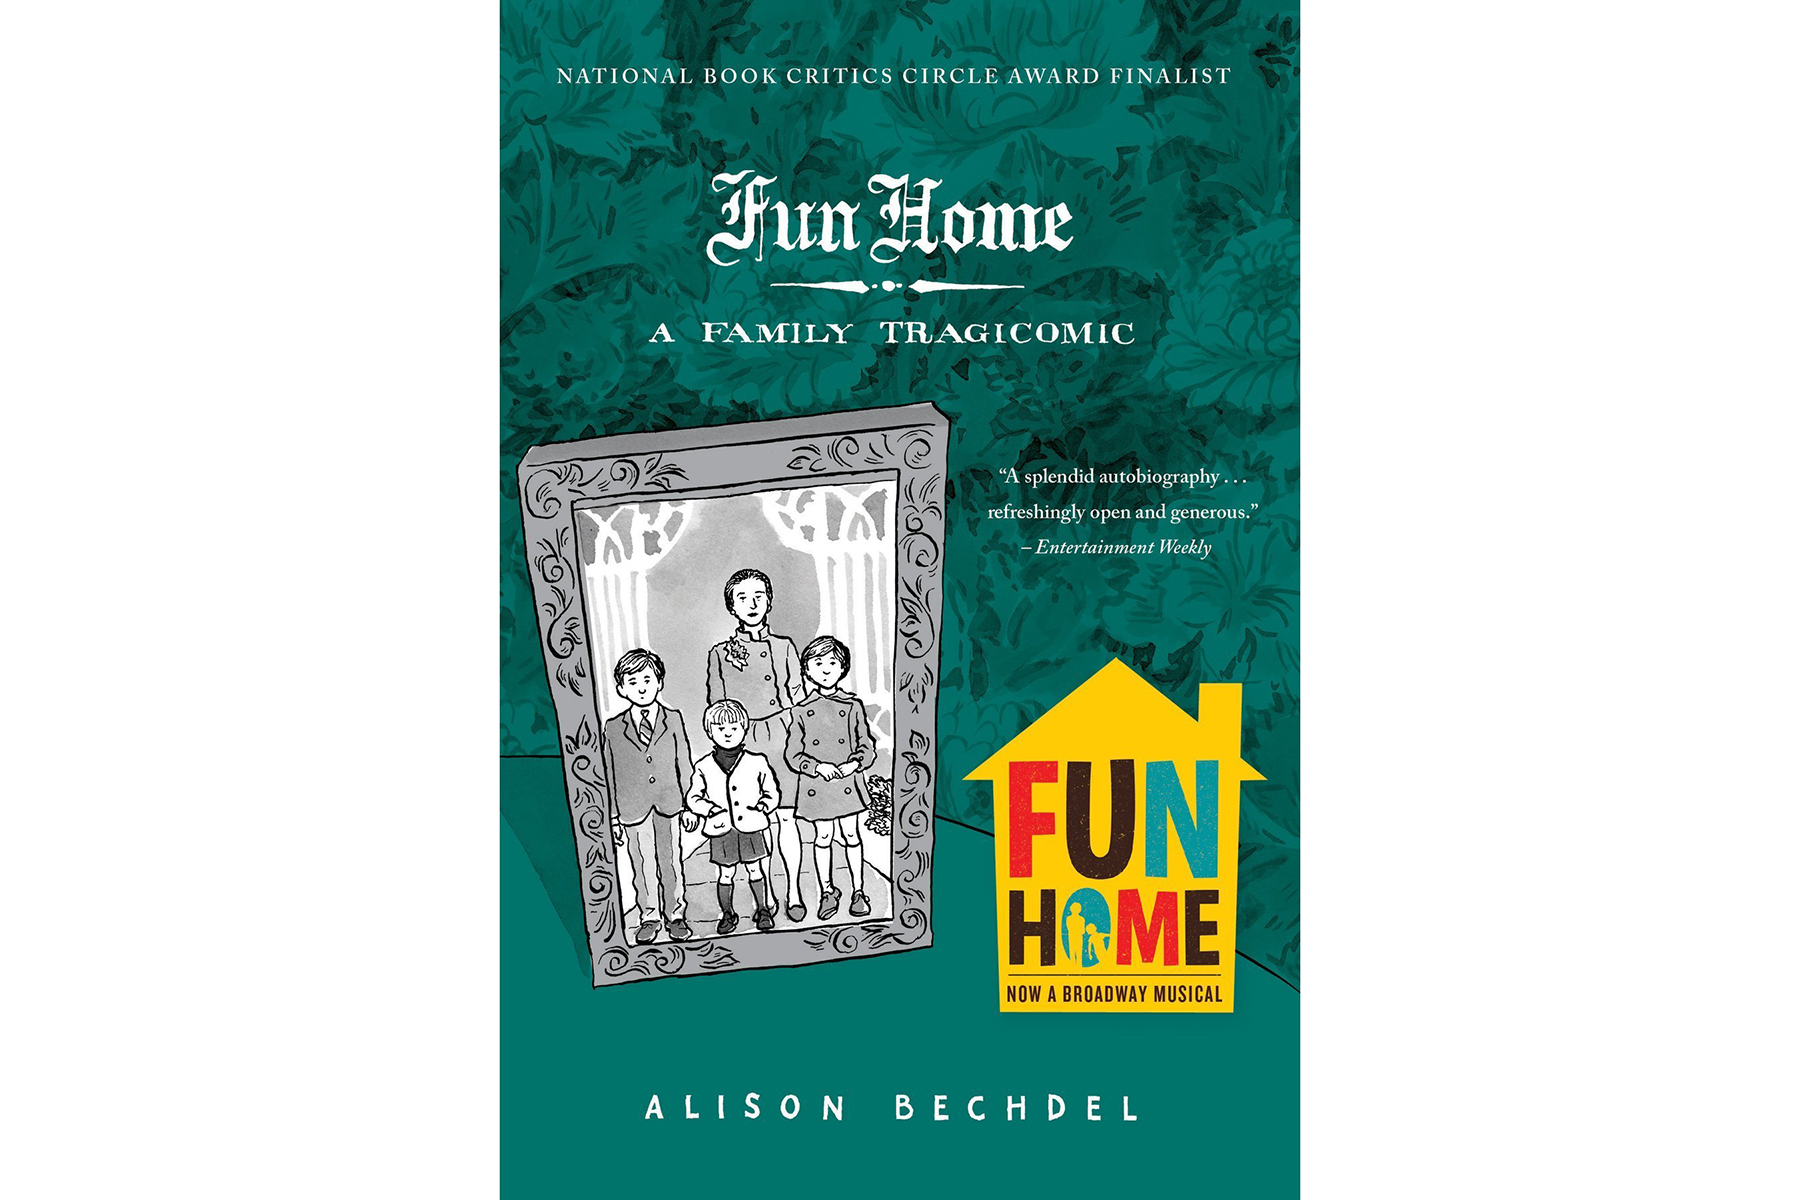 Fun Home, by Alison Bechdel Book Cover